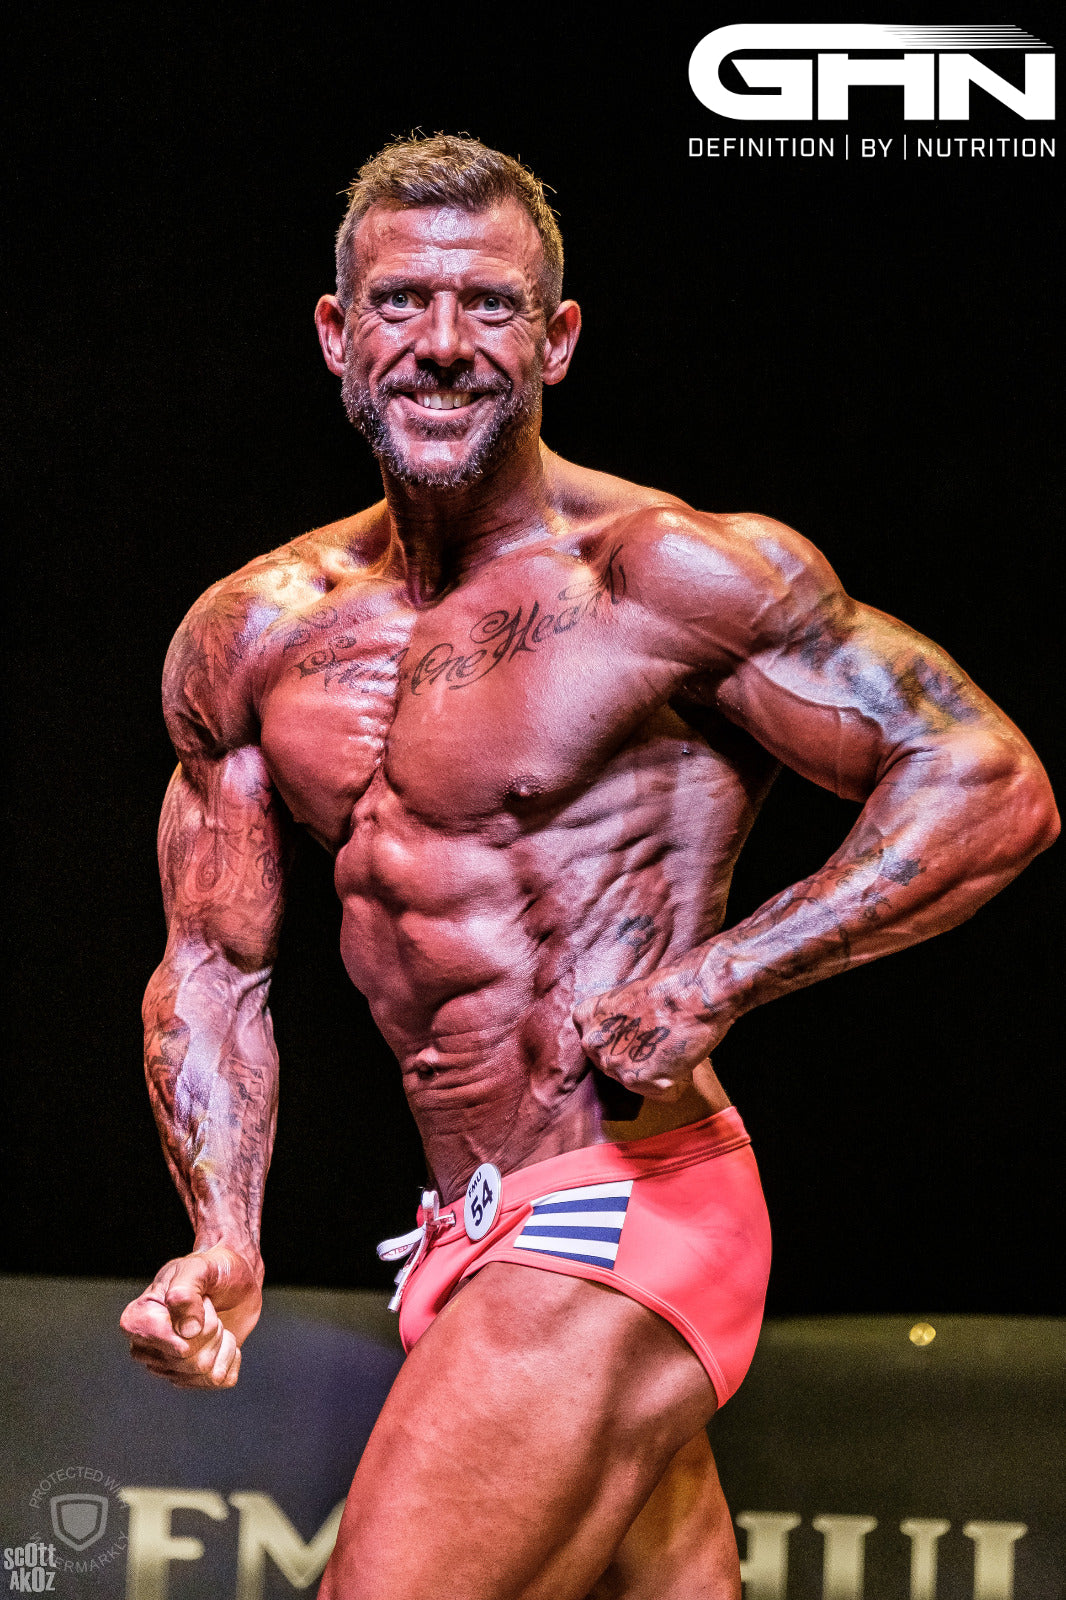 Paul Remmer Wins At Future Muscle Union